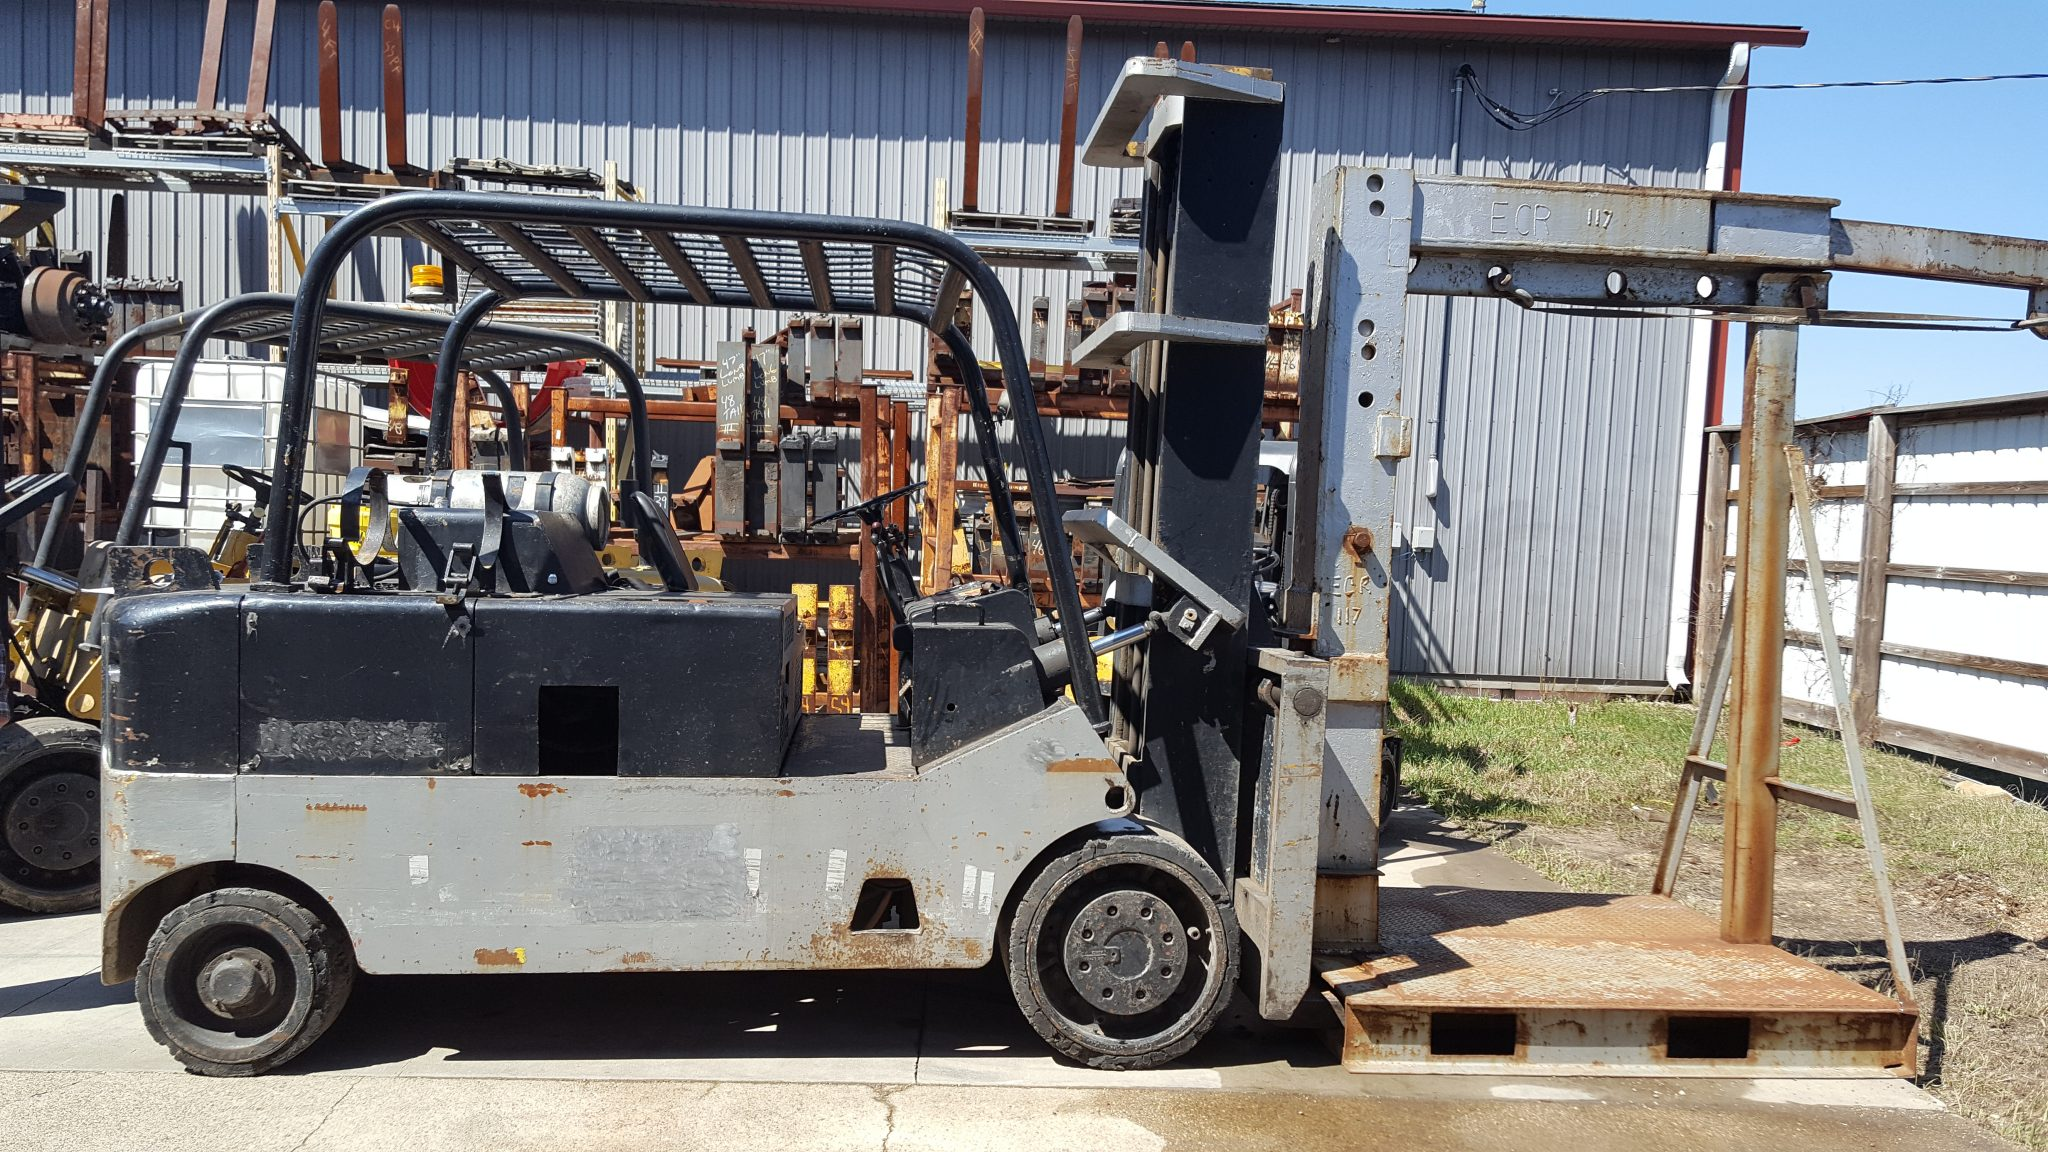 Used Forklifts For Sale | Affordable Machinery | Page 7 of 17